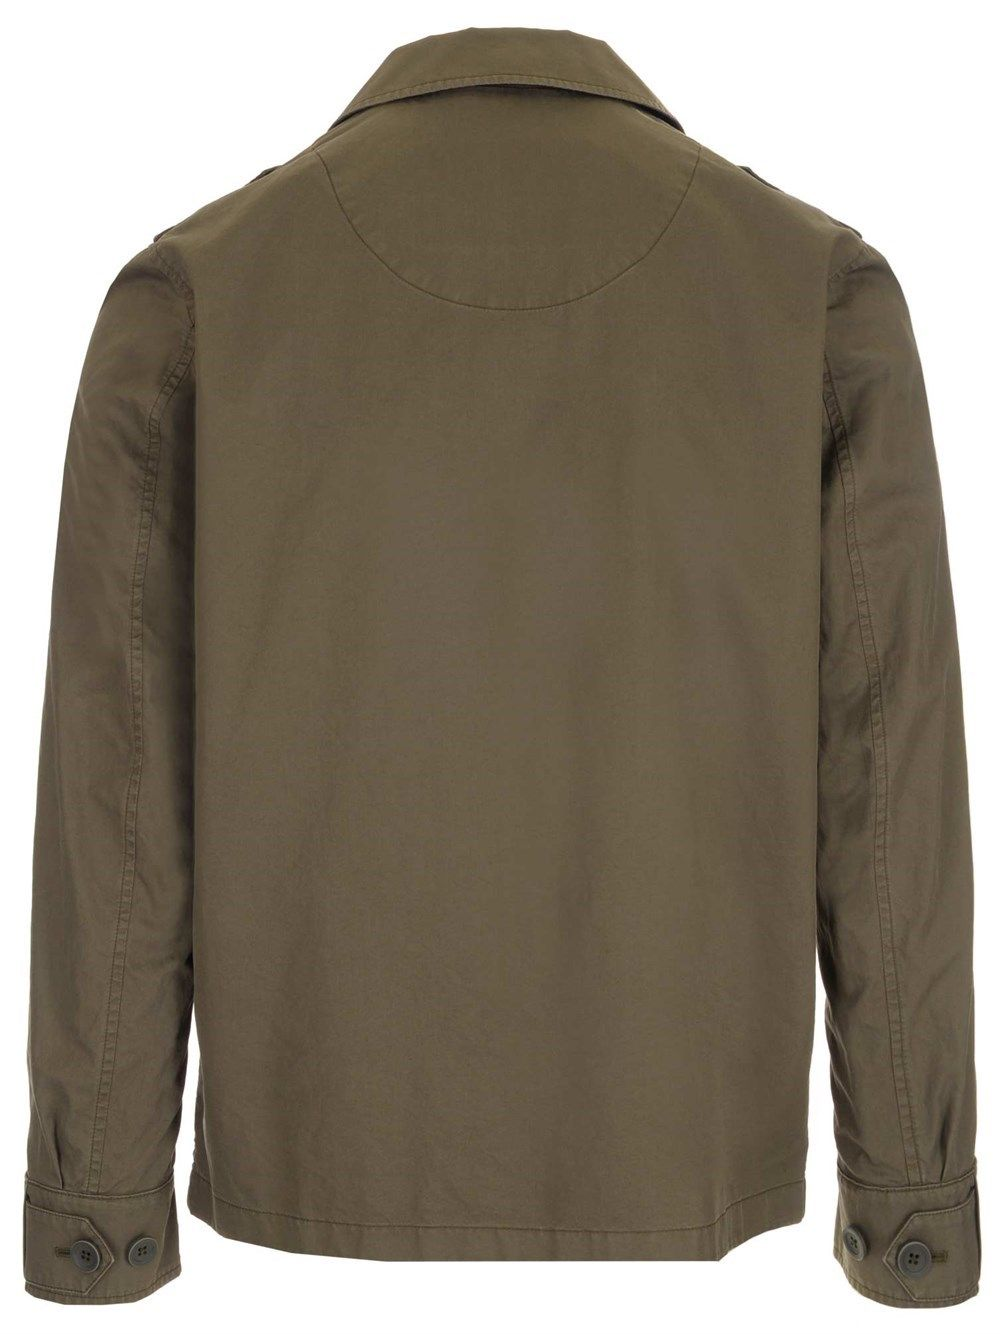 HERNO Cottons HERNO MEN'S GREEN OTHER MATERIALS OUTERWEAR JACKET